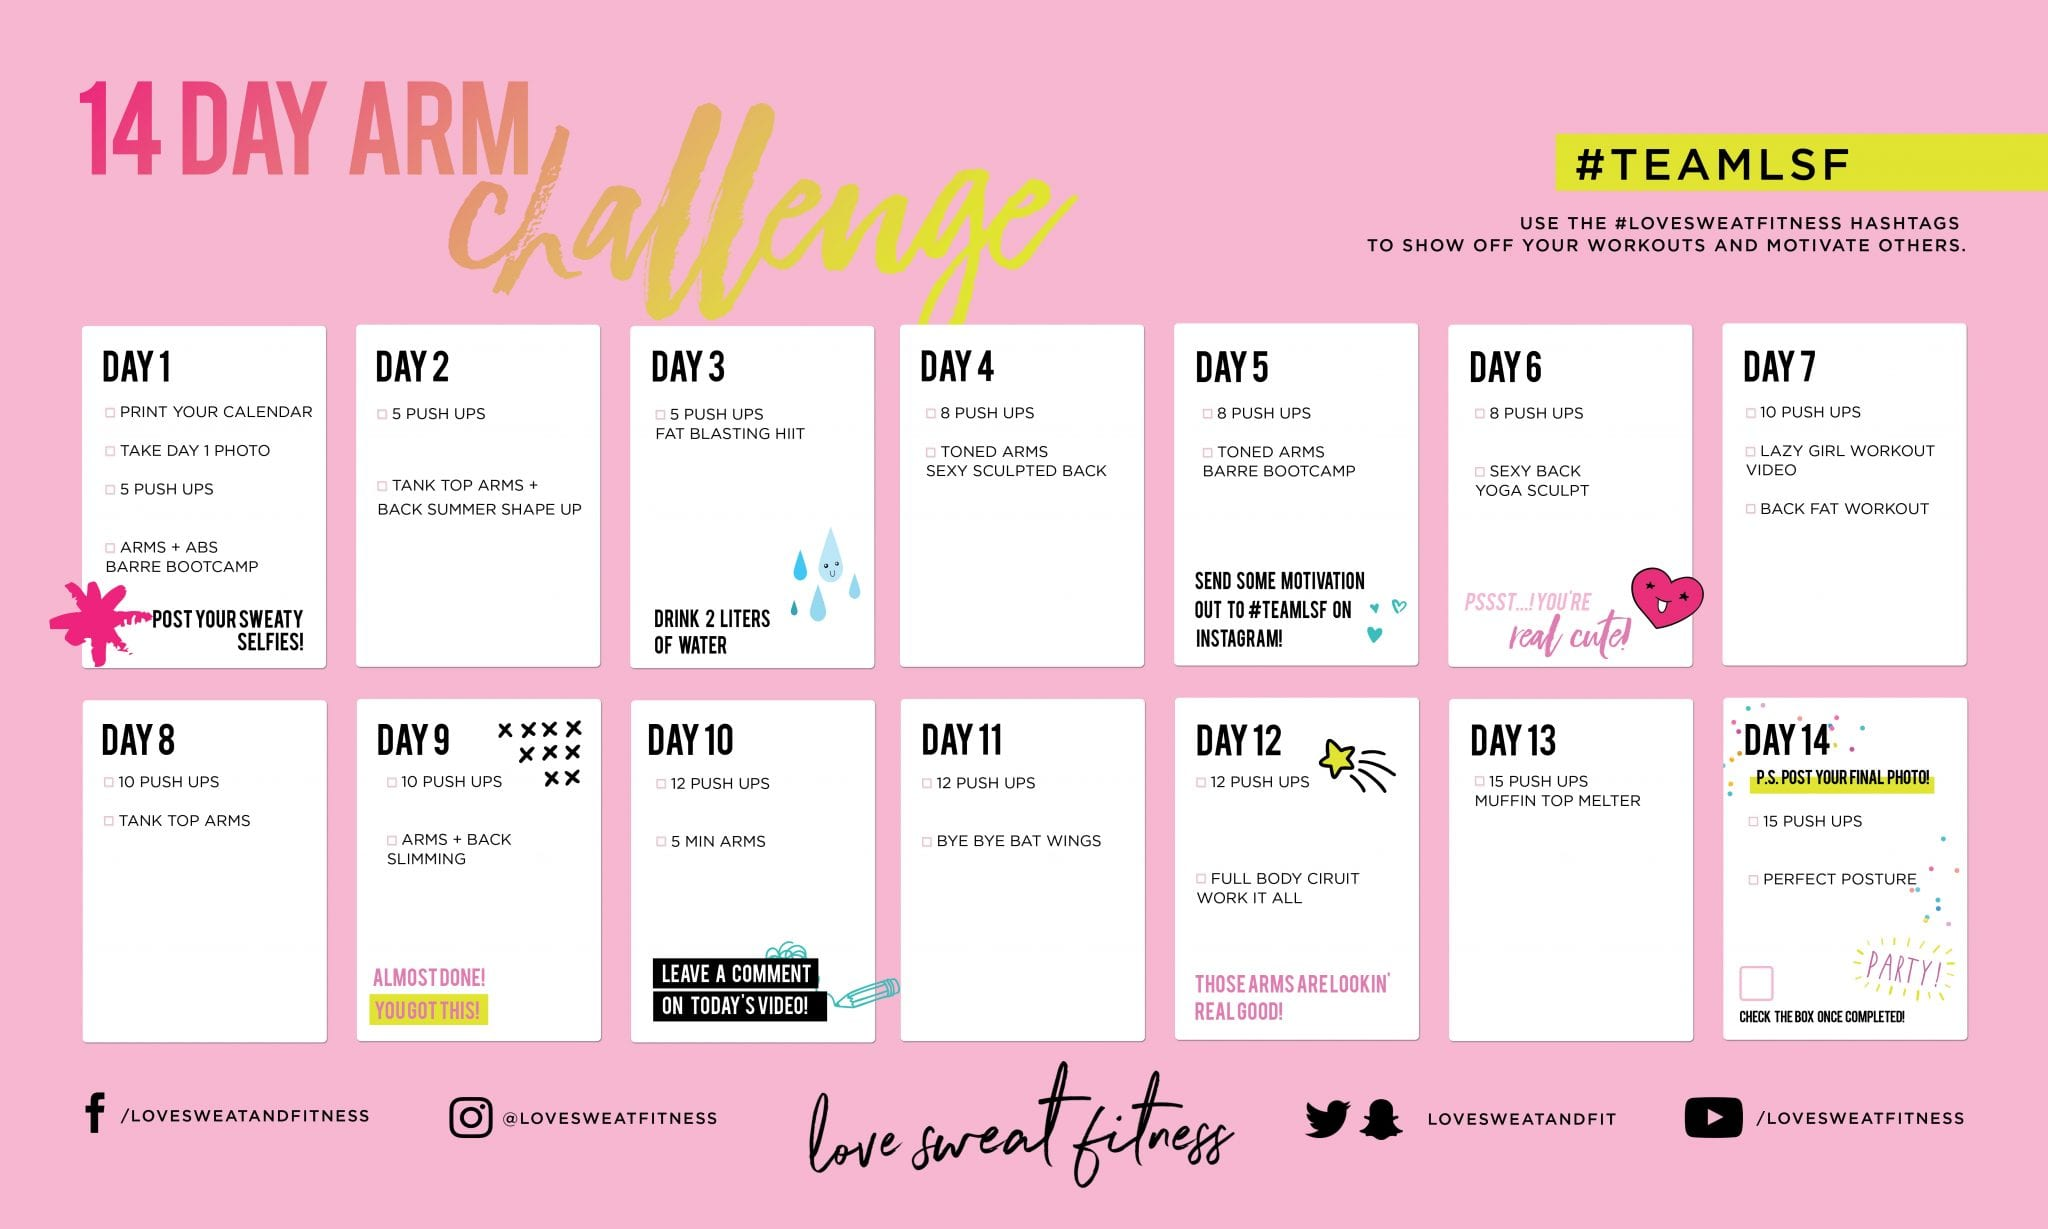 14 Day Arms Challenge